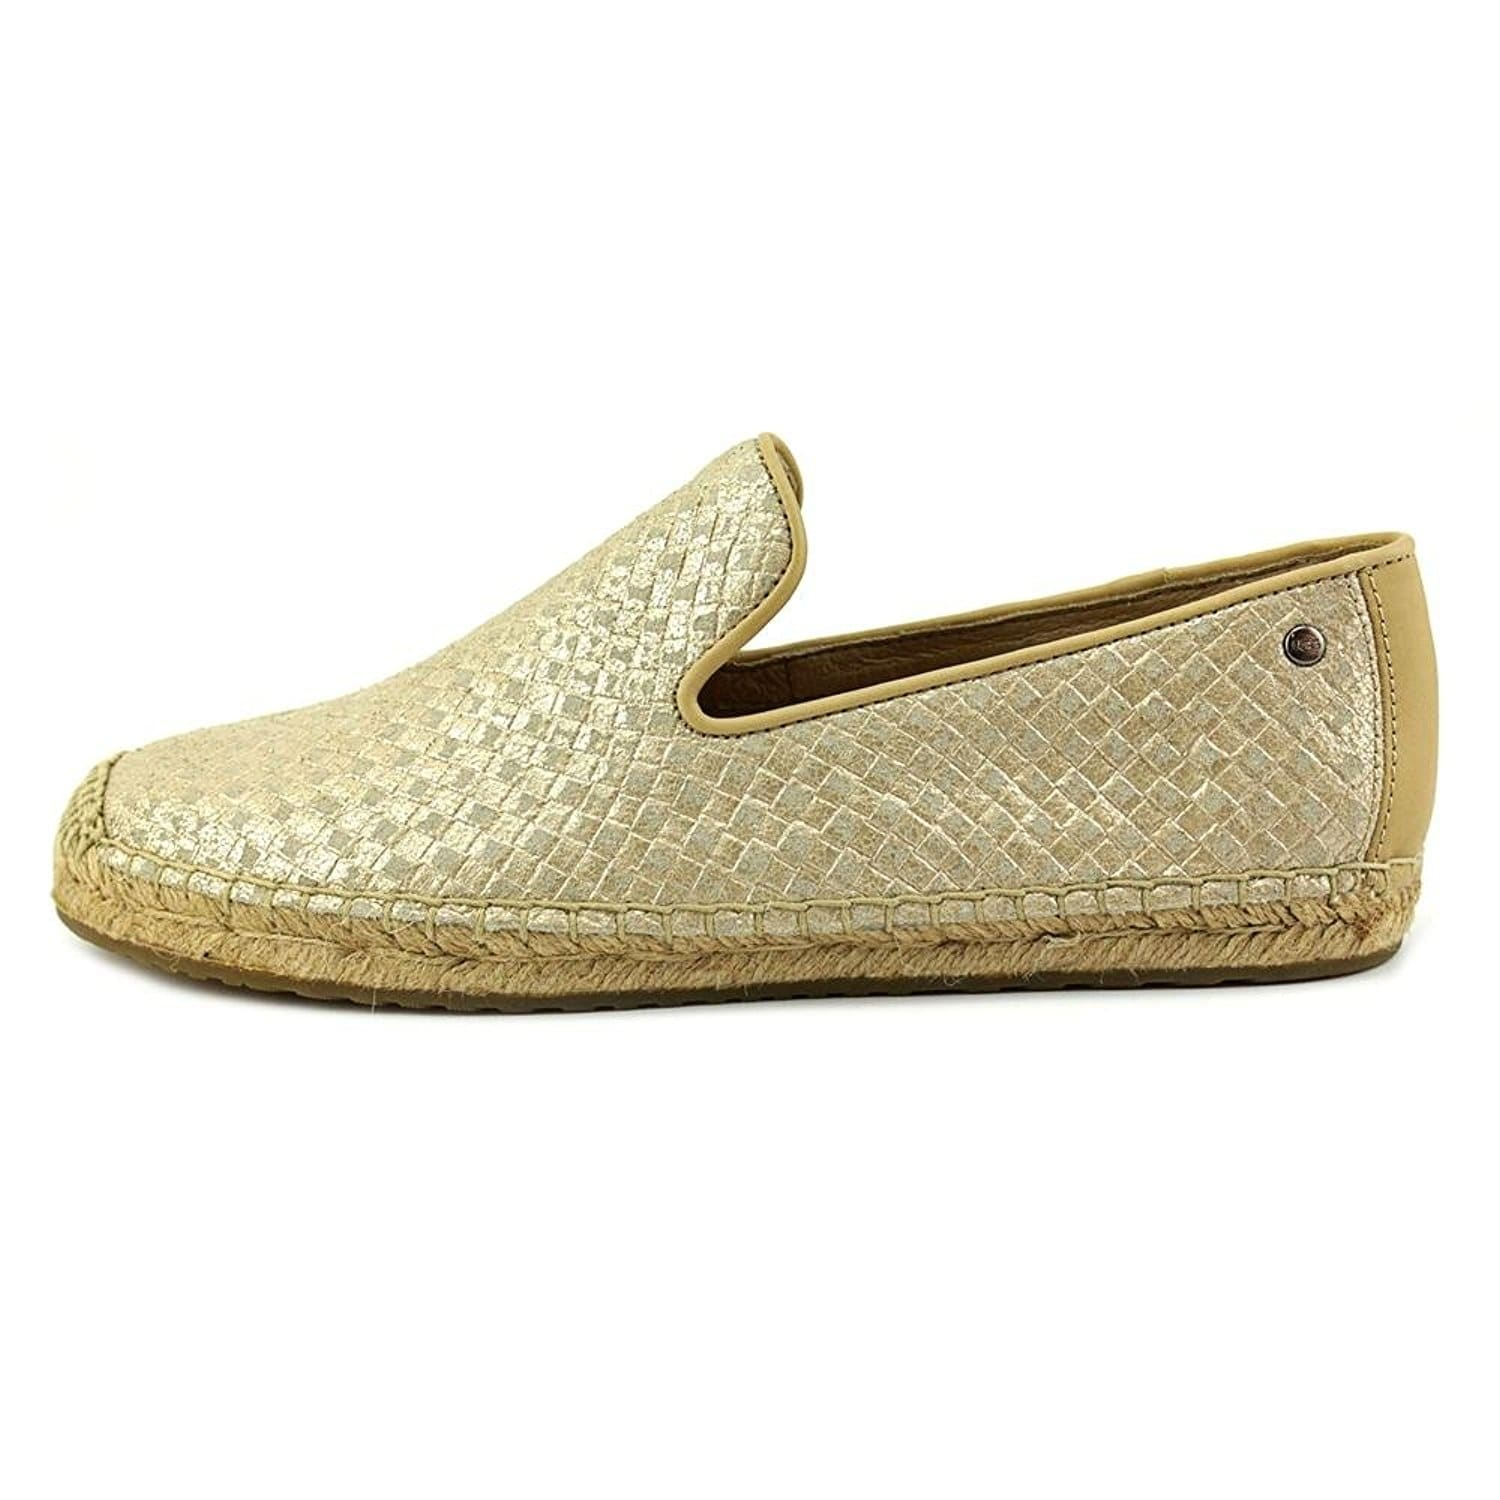 b0be901a68e UGG Womens Sandrinne Metallic Basket Espadrille, Gold, Size 9.0 - 9